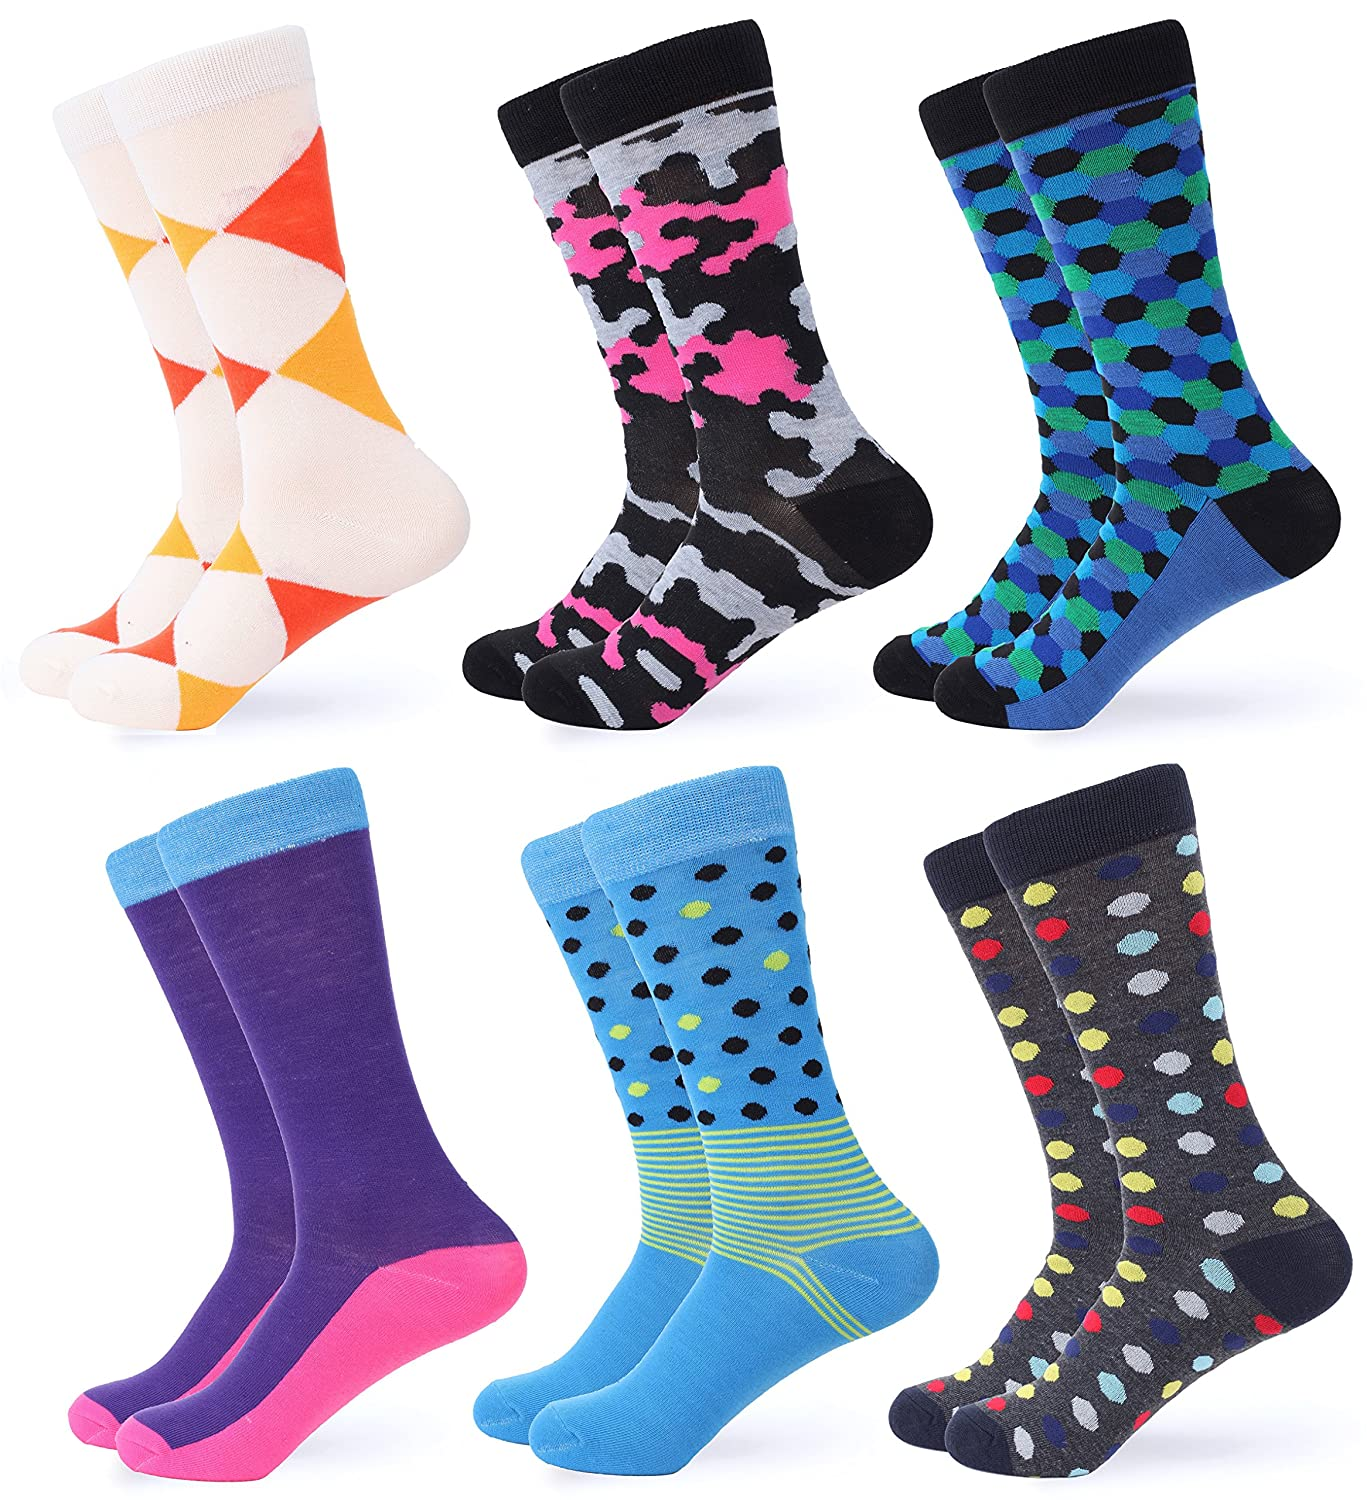 Gallery Seven Mens Dress Socks - Funky Colorful Socks for Men